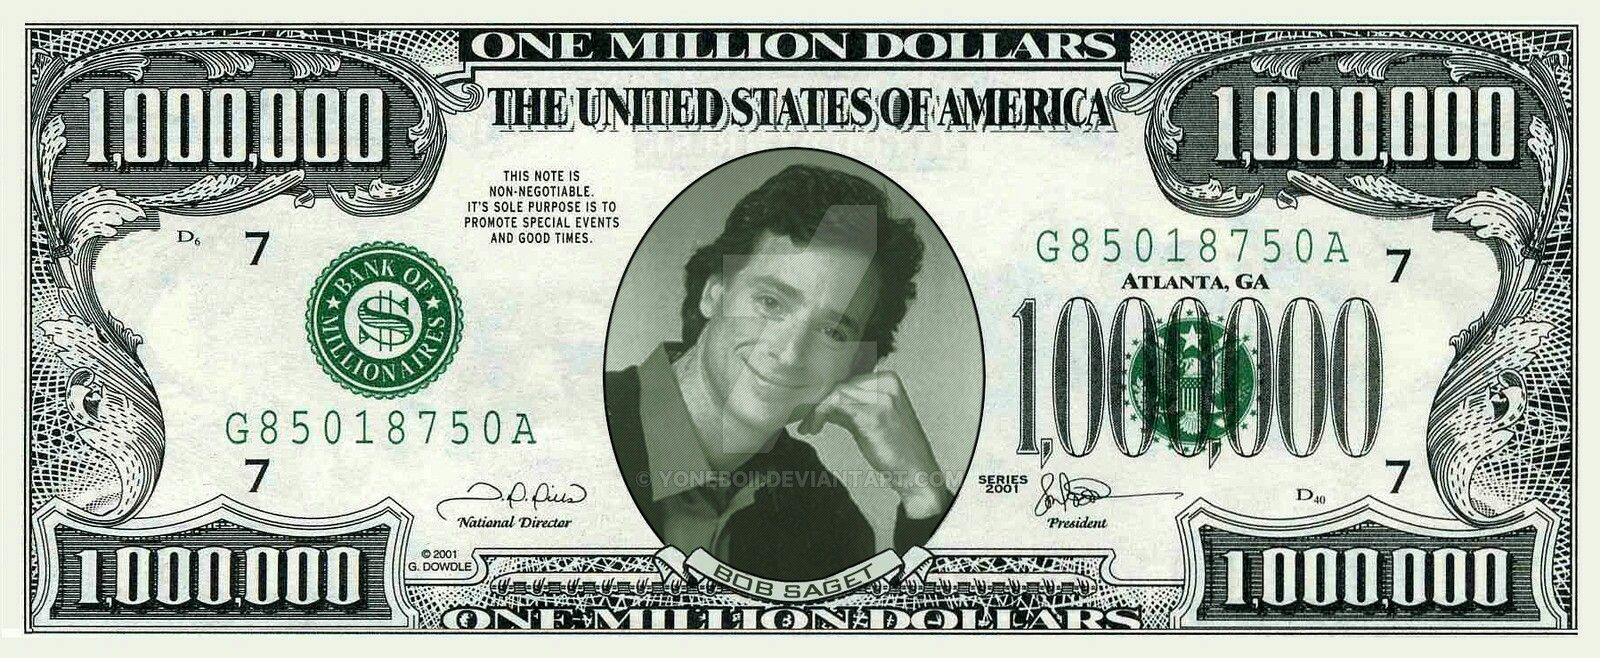 Pin By Mitchell Courtney On Full House One Million Dollar Bill